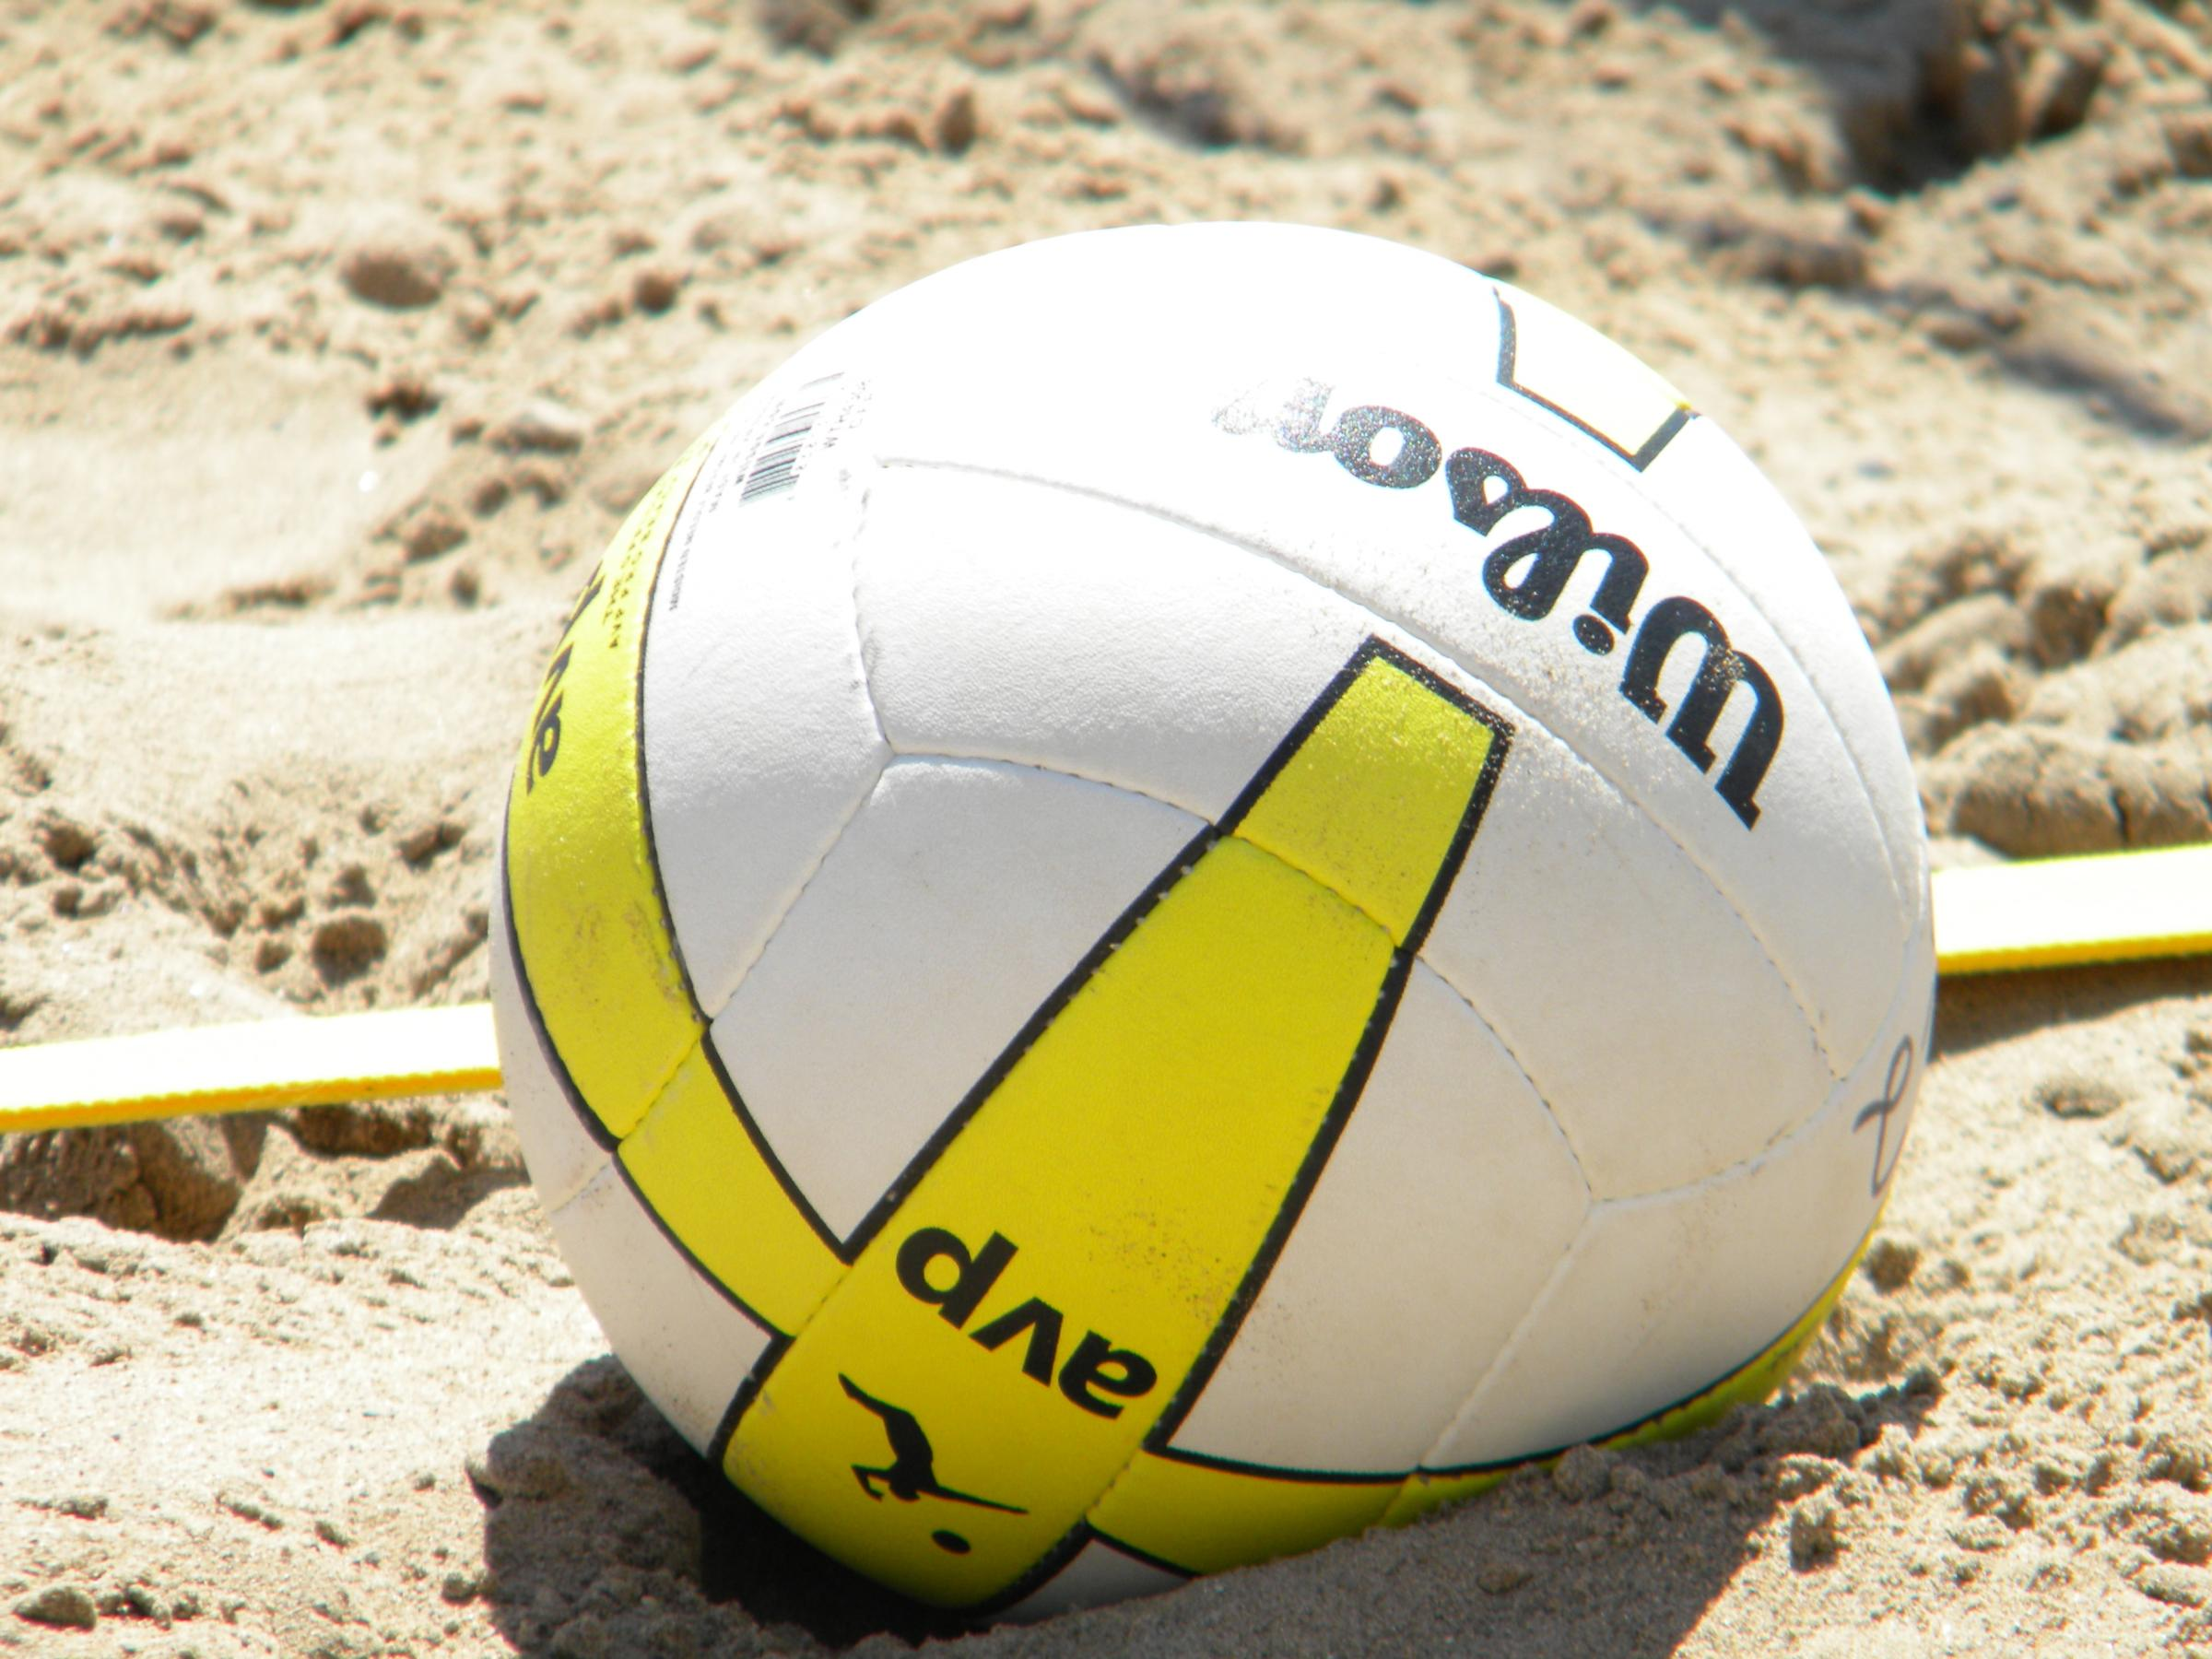 All Are Welcome To Bradford Beach This Weekend For The Avp Volleyball Tournament